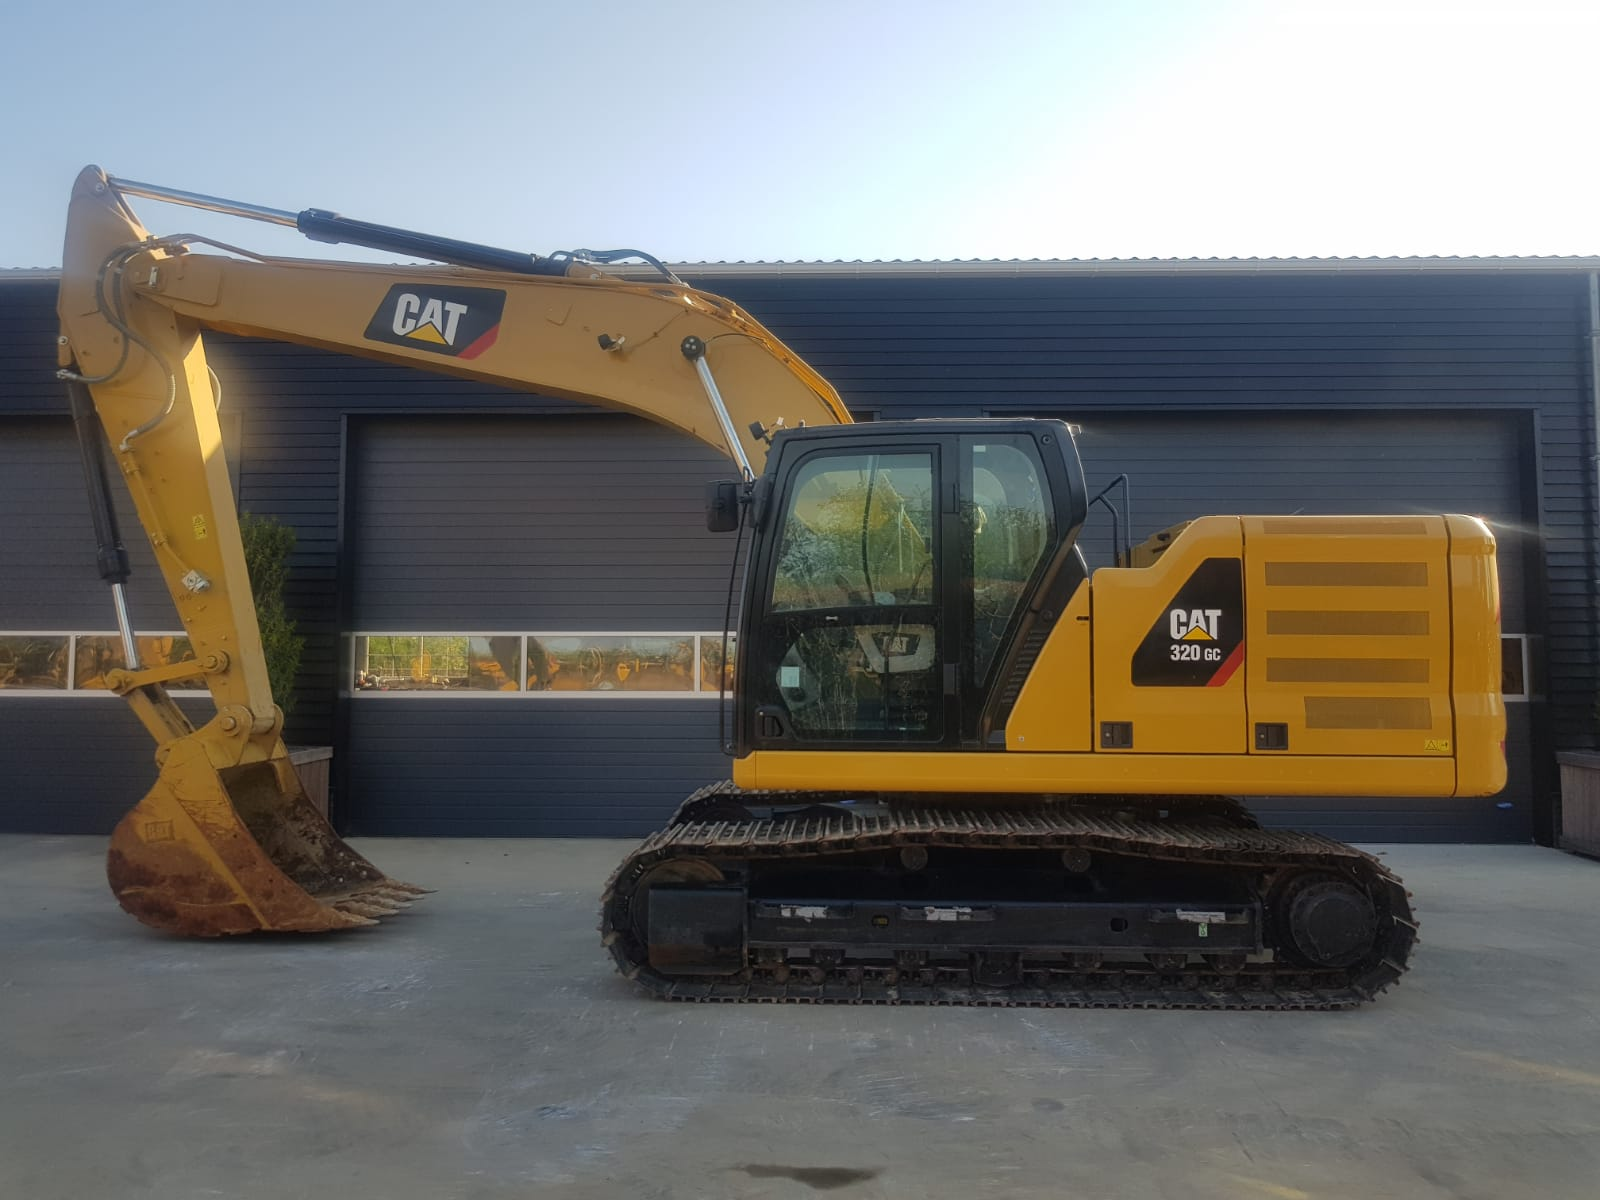 CATERPILLAR 320 GC NEXT GENERATION